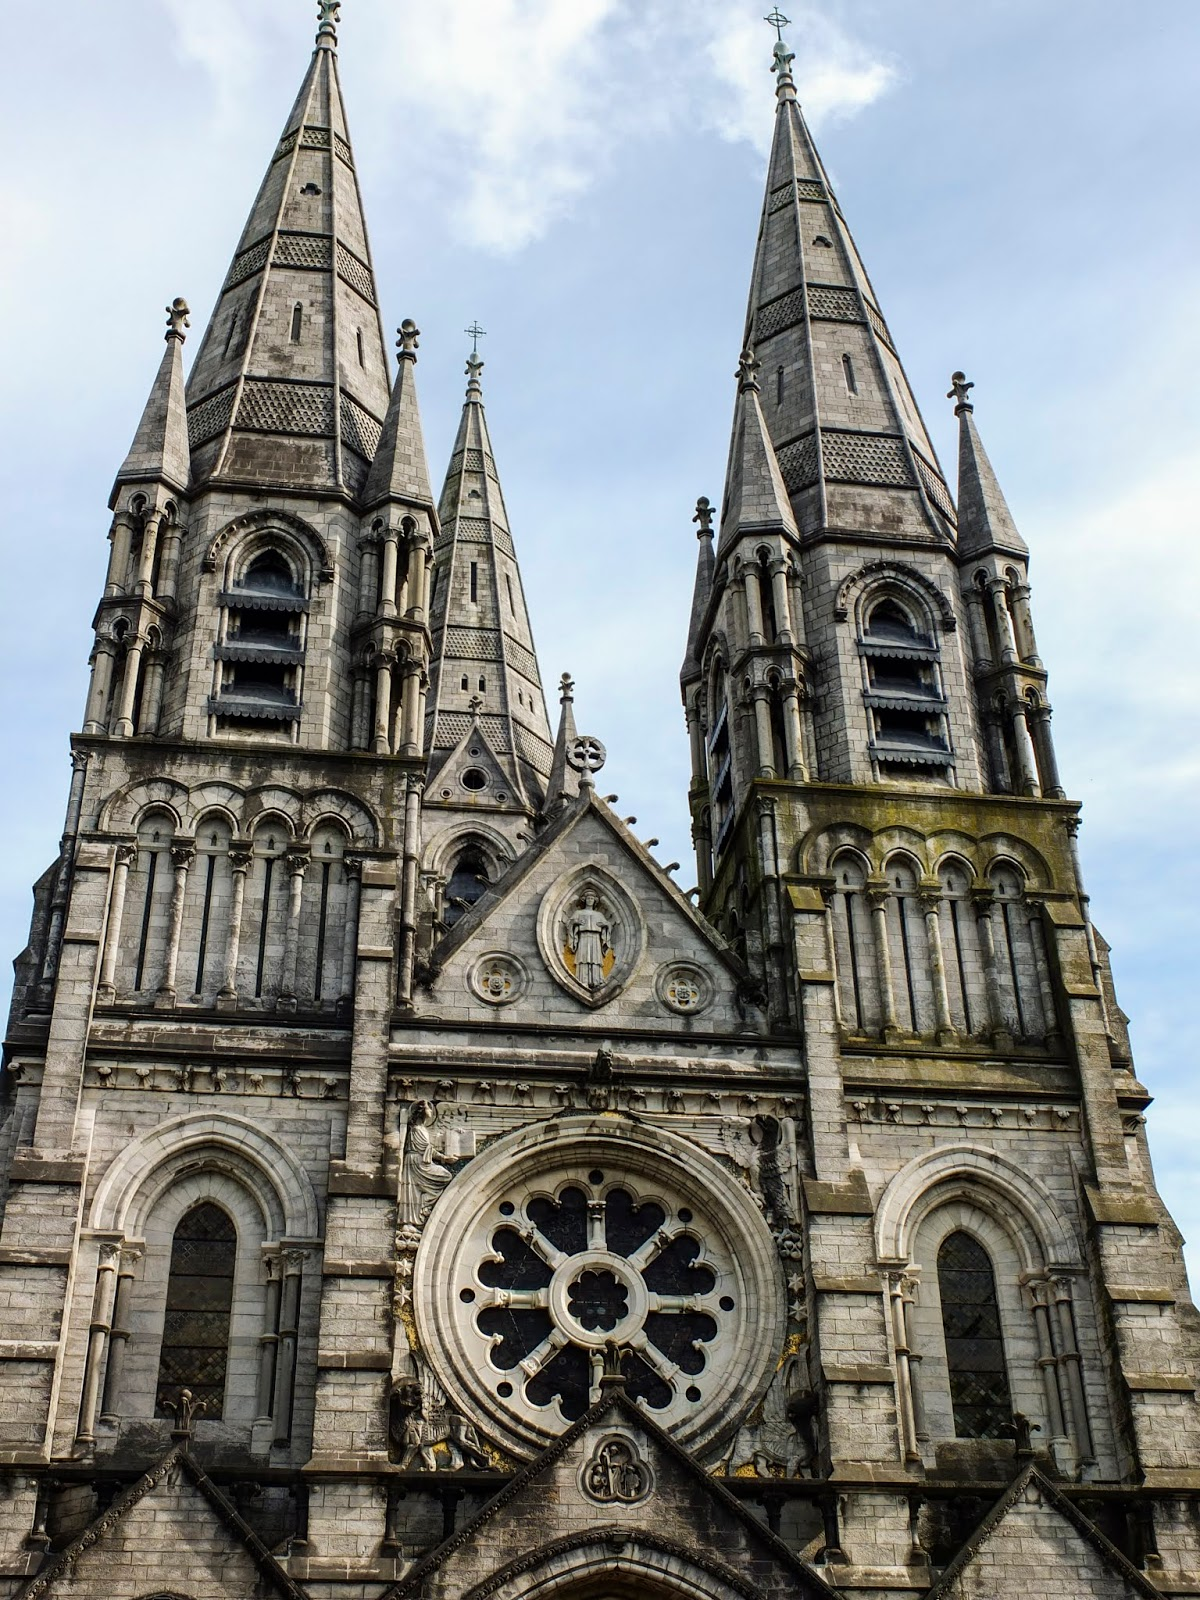 View of the front of the Saint Fin Barre's Cathedral in Cork City.